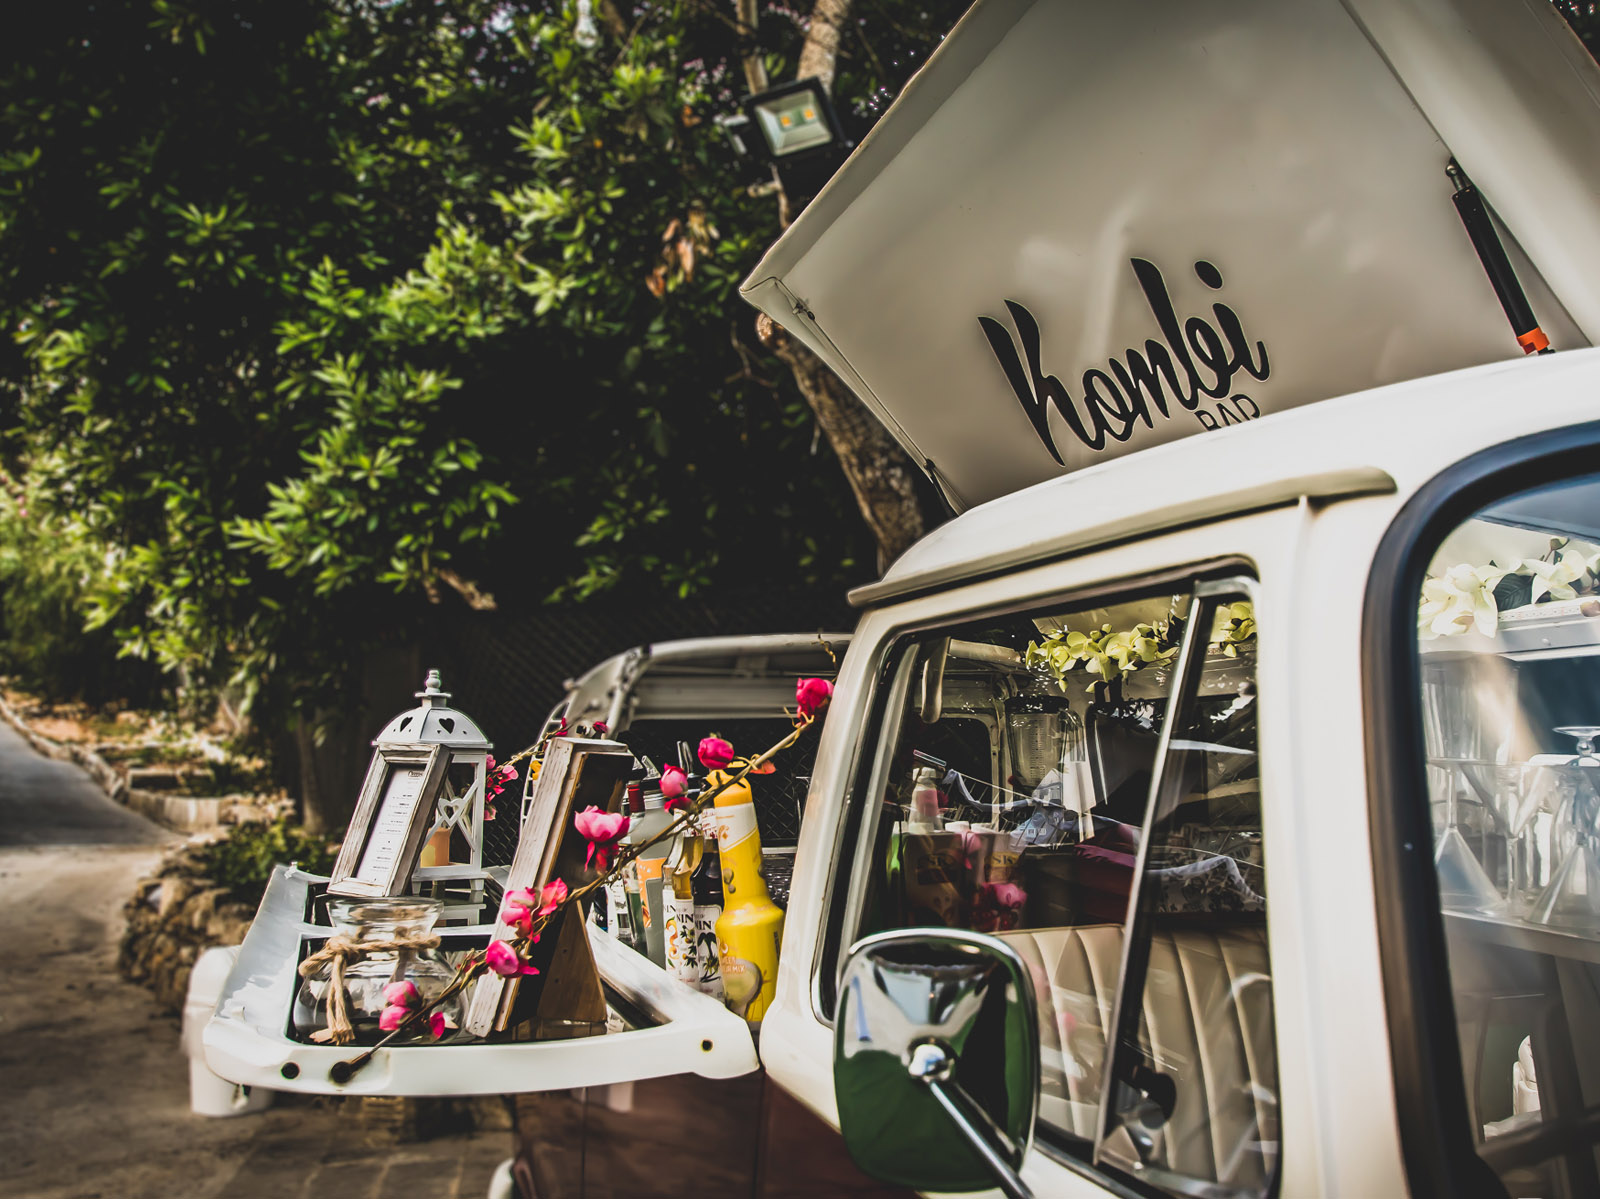 Welcome to the Kombi Bar